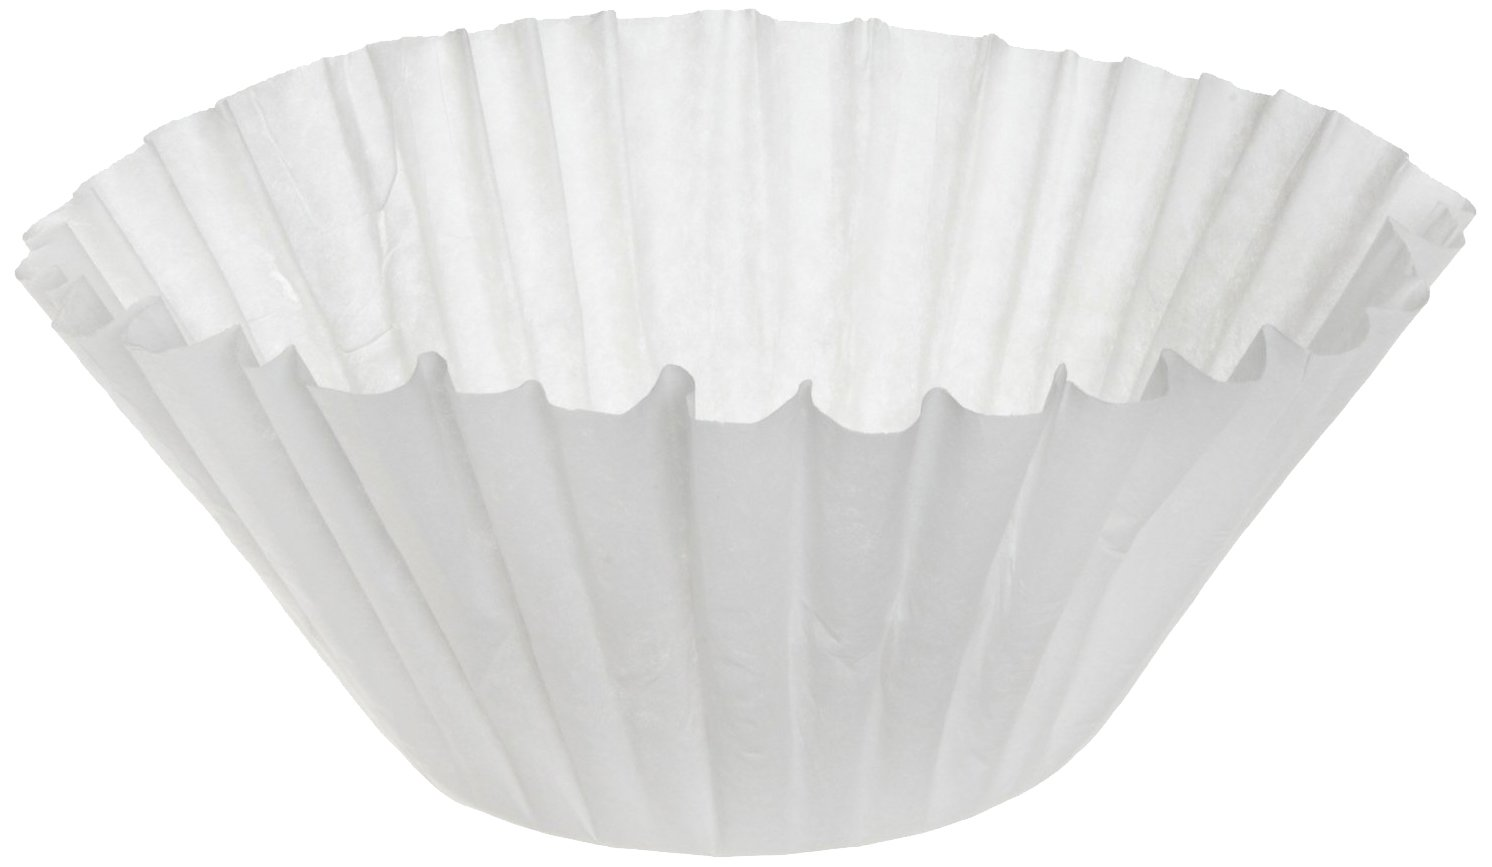 Amazon.com: BUNN 1M5002 Commercial Coffee Filters, 12-Cup Size ...